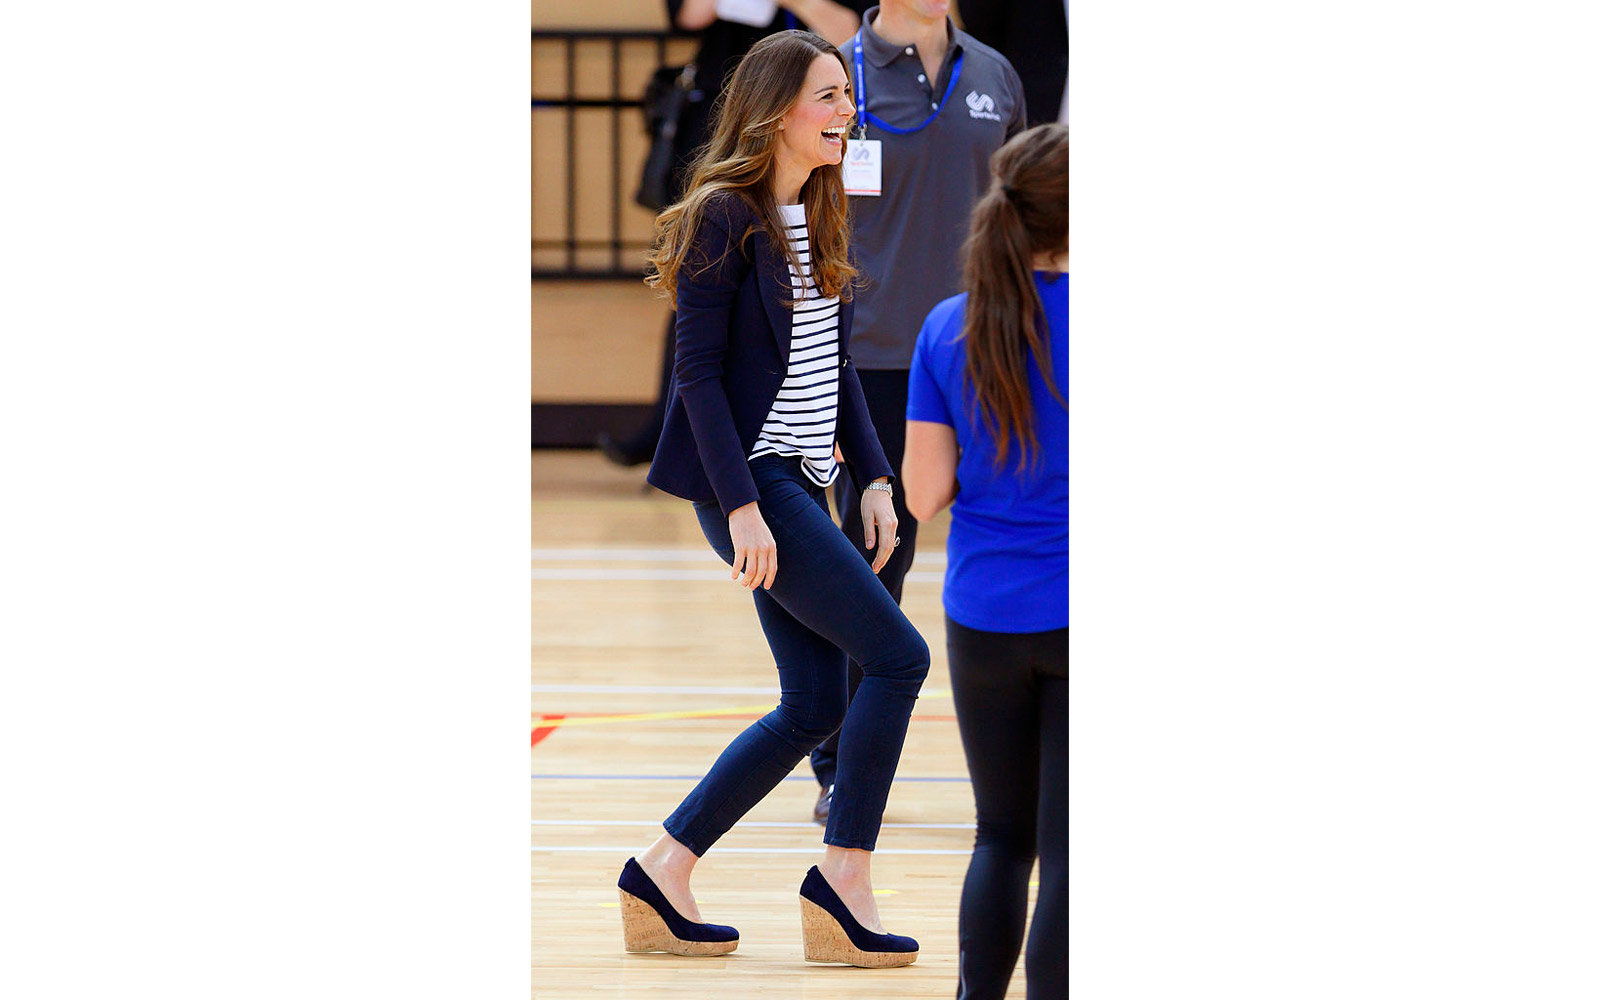 LONDON, UNITED KINGDOM - OCTOBER 18: (EMBARGOED FOR PUBLICATION IN UK NEWSPAPERS UNTIL 48 HOURS AFTER CREATE DATE AND TIME) Catherine, Duchess of Cambridge plays volleyball as she attends a SportsAid Athlete Workshop in the Copper Box Arena at the Queen E